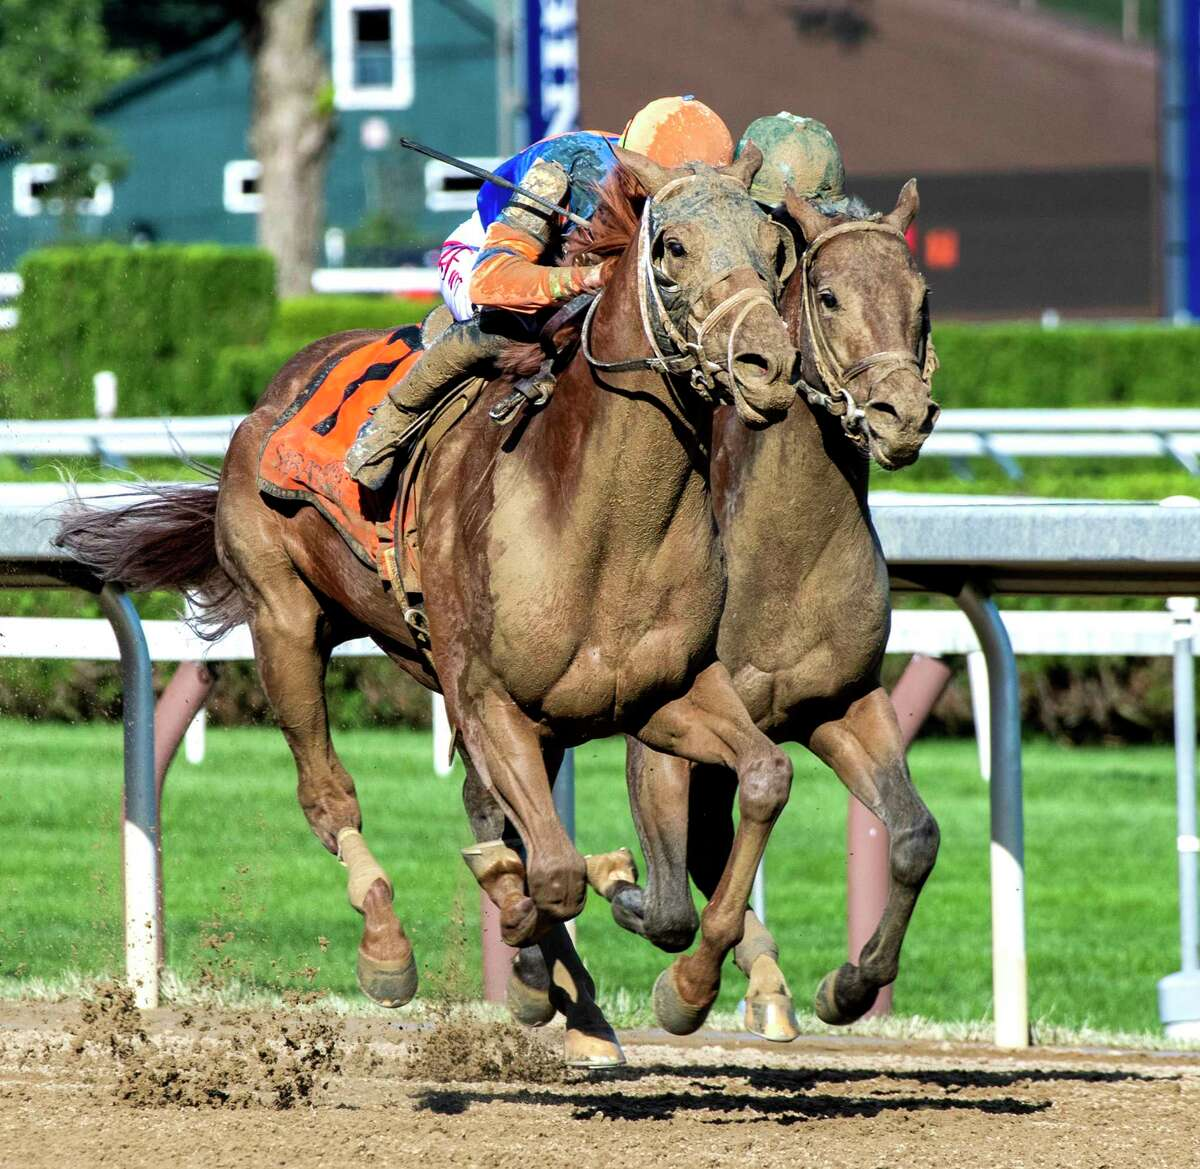 Irad Ortiz Jr. on Dynamic One holds off Miles D to win the 12th running of the The Curlin at The Saratoga Race Course Friday July 30, 2021 in Saratoga Springs, N.Y. Photo special to the Times Union by Skip Dickstein